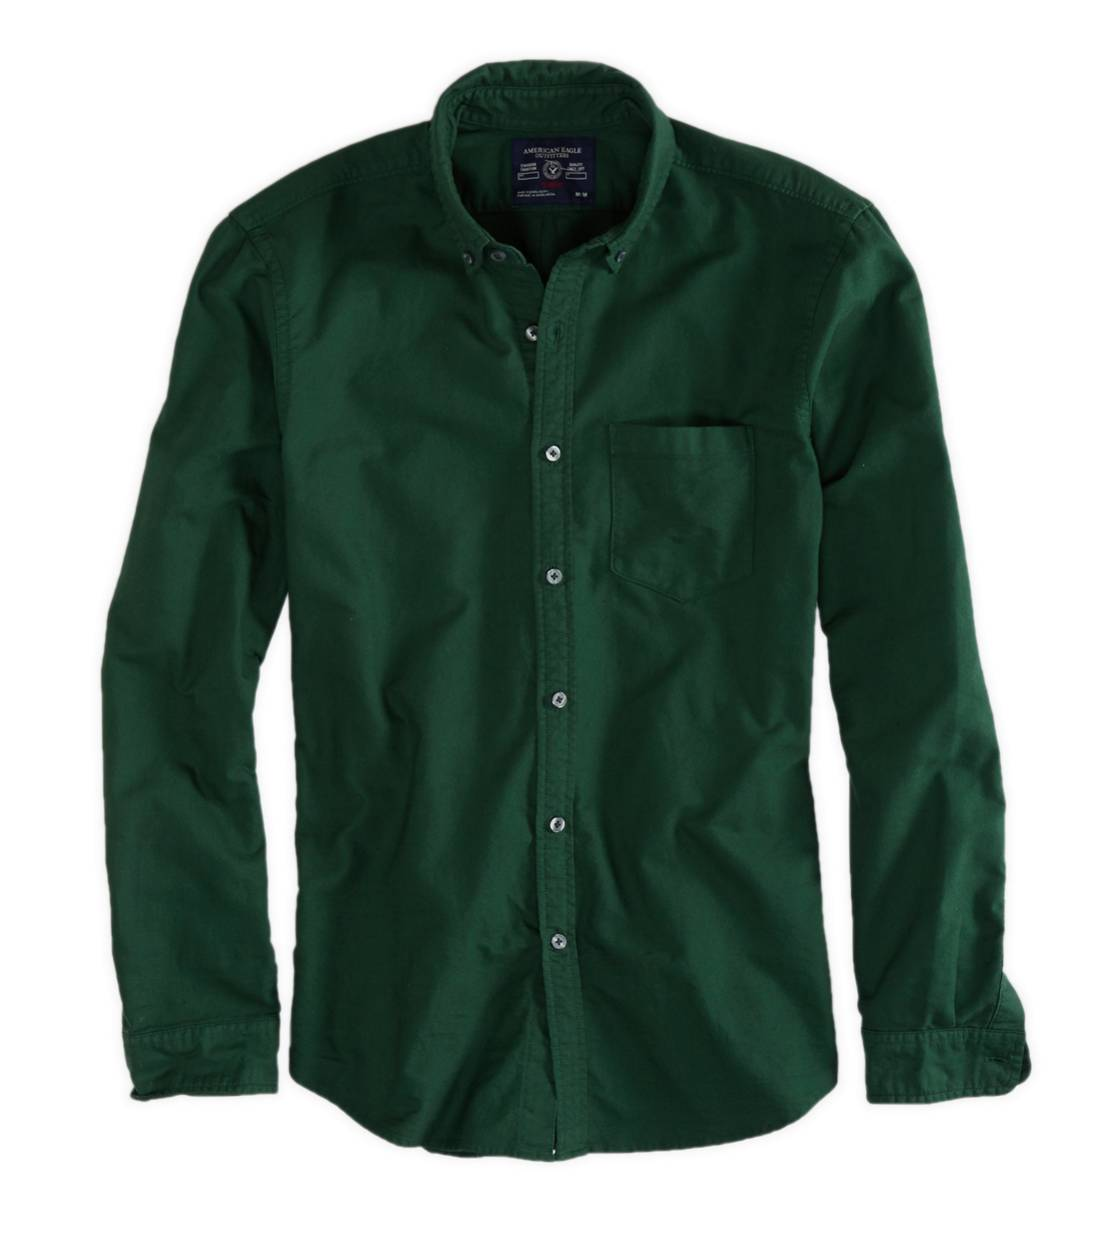 Olive AE Solid Oxford Shirt